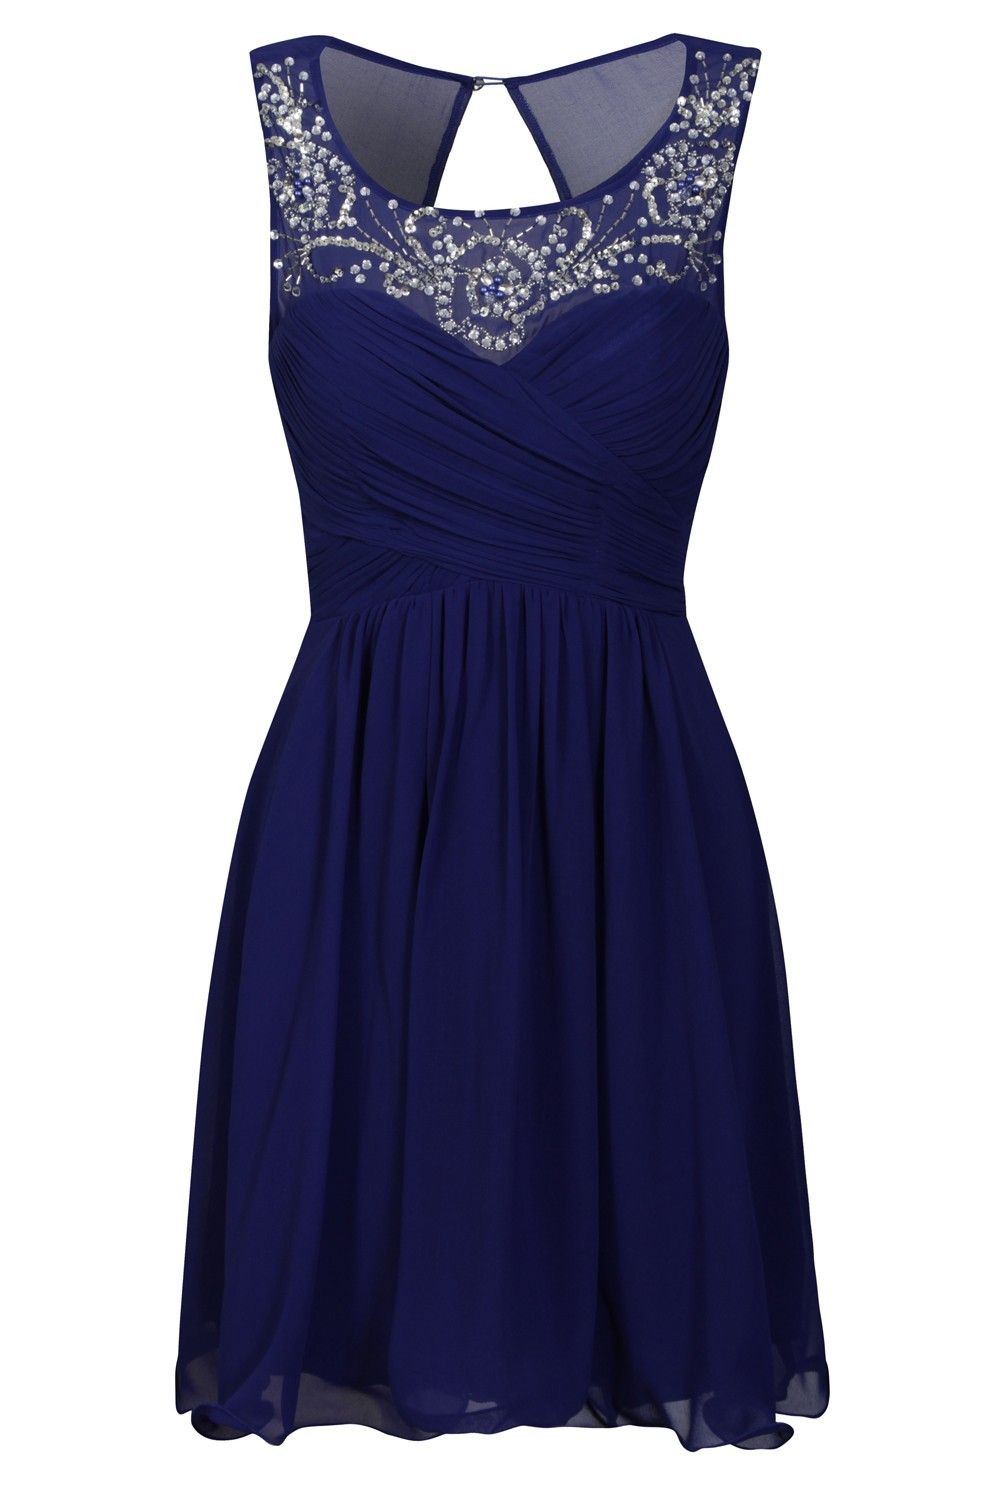 Gorgeous udd pinterest neckline cobalt and fancy party